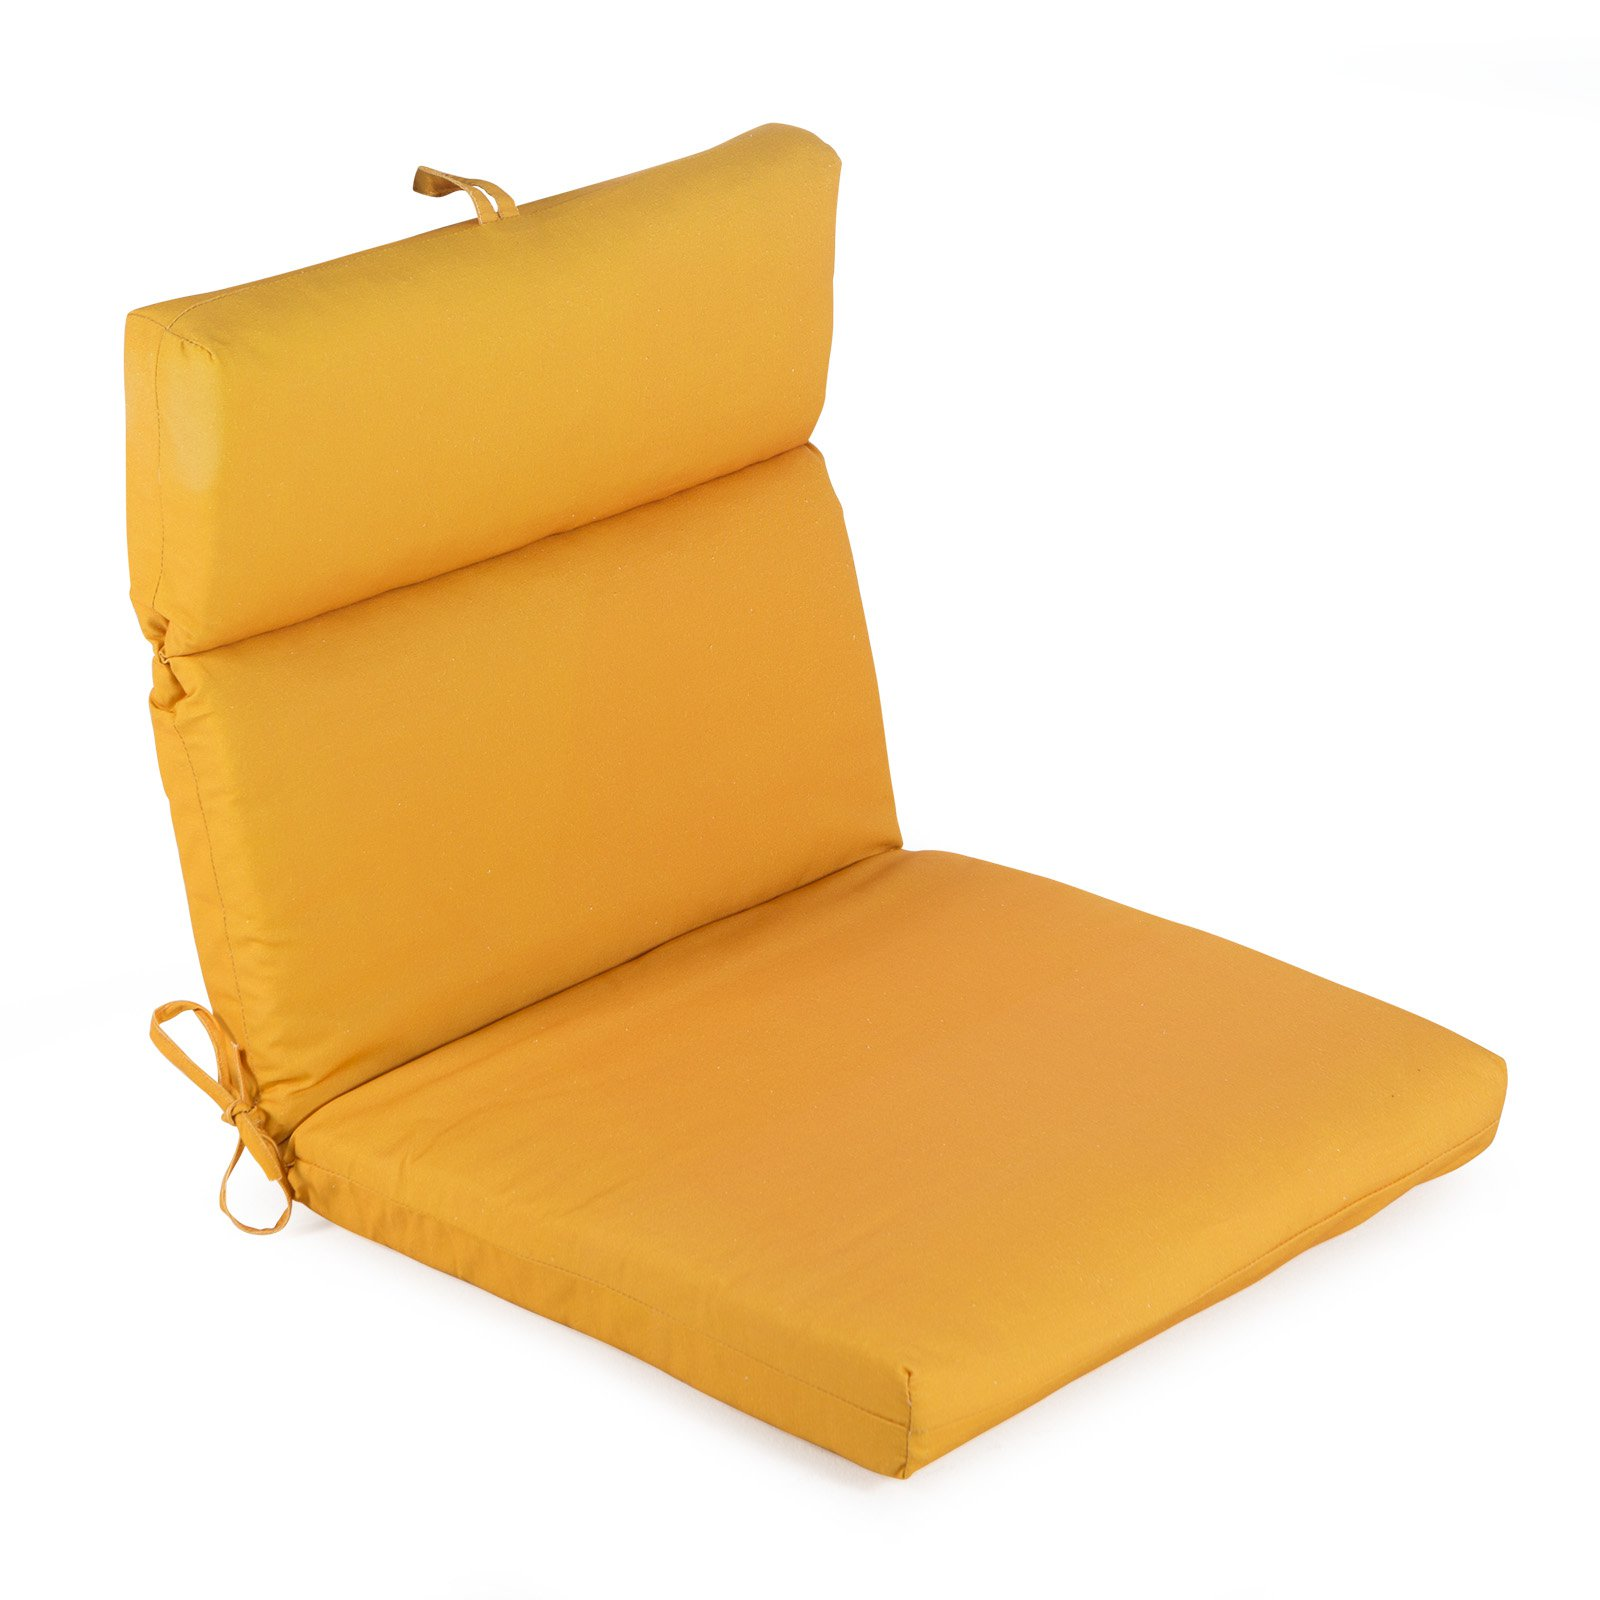 Picture of: Coral Coast Mid Century Modern French Edge Cartridge Hinged Seat Amp Back Outdoor Chair Cushion Walmart Com Walmart Com